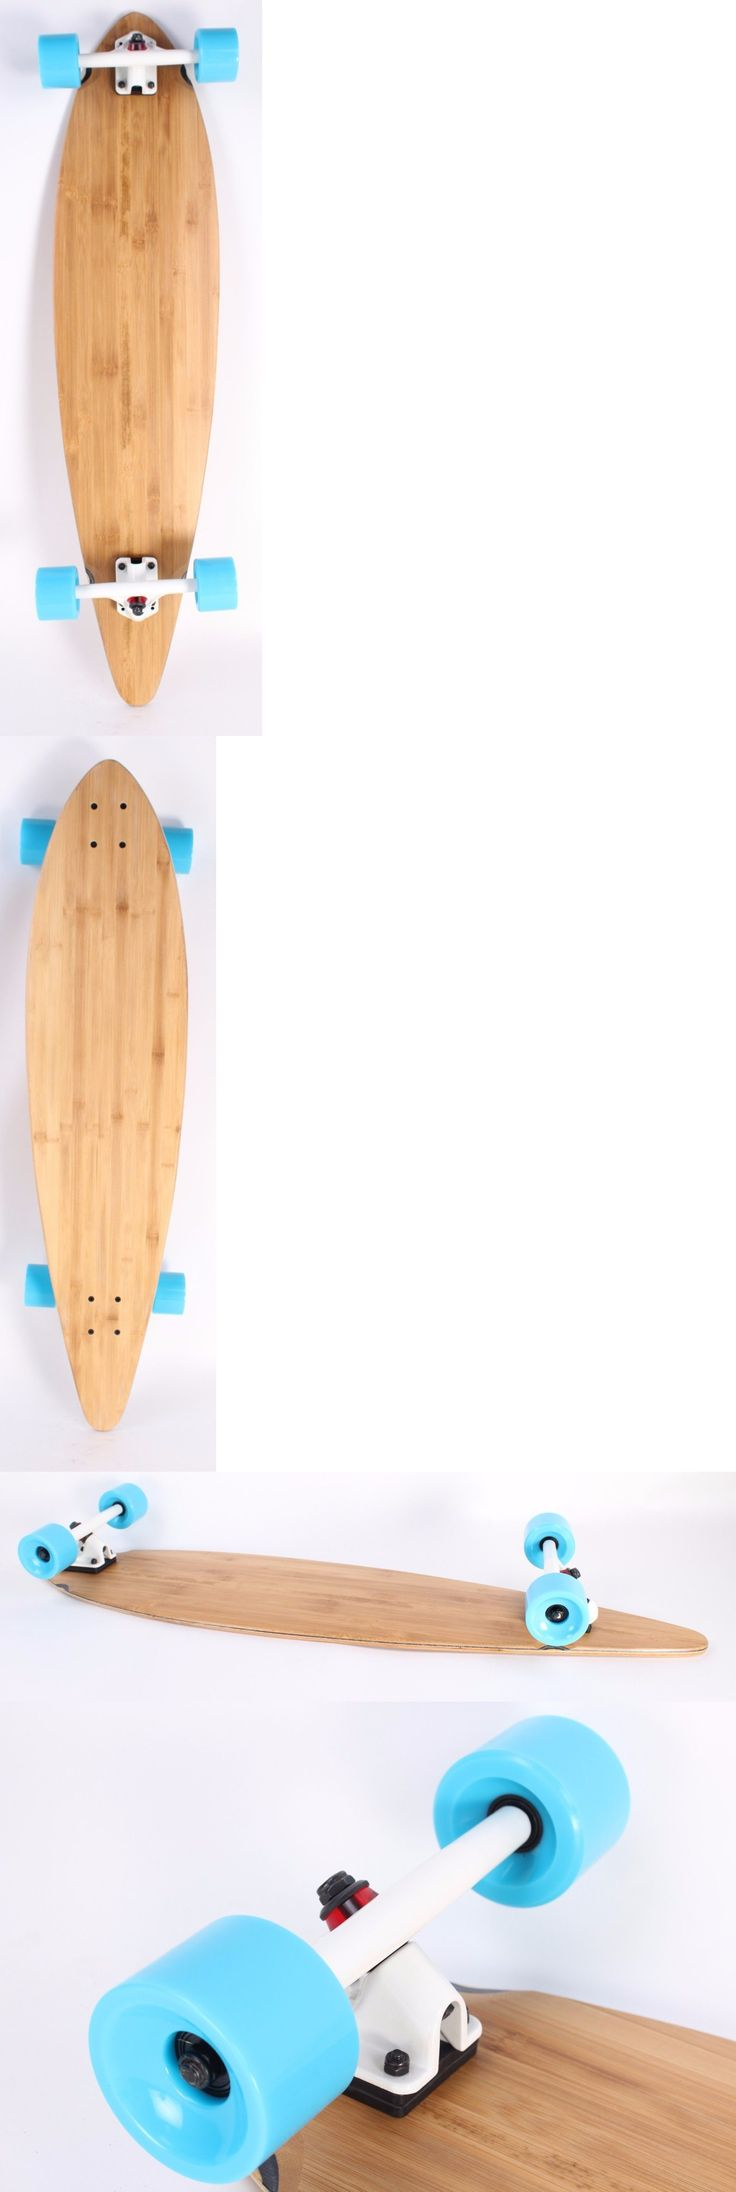 Longboards-Complete 165942: Bamboo 40 Pintail Complete Longboard White Trucks Sky Blue Wheels -> BUY IT NOW ONLY: $59.99 on eBay!